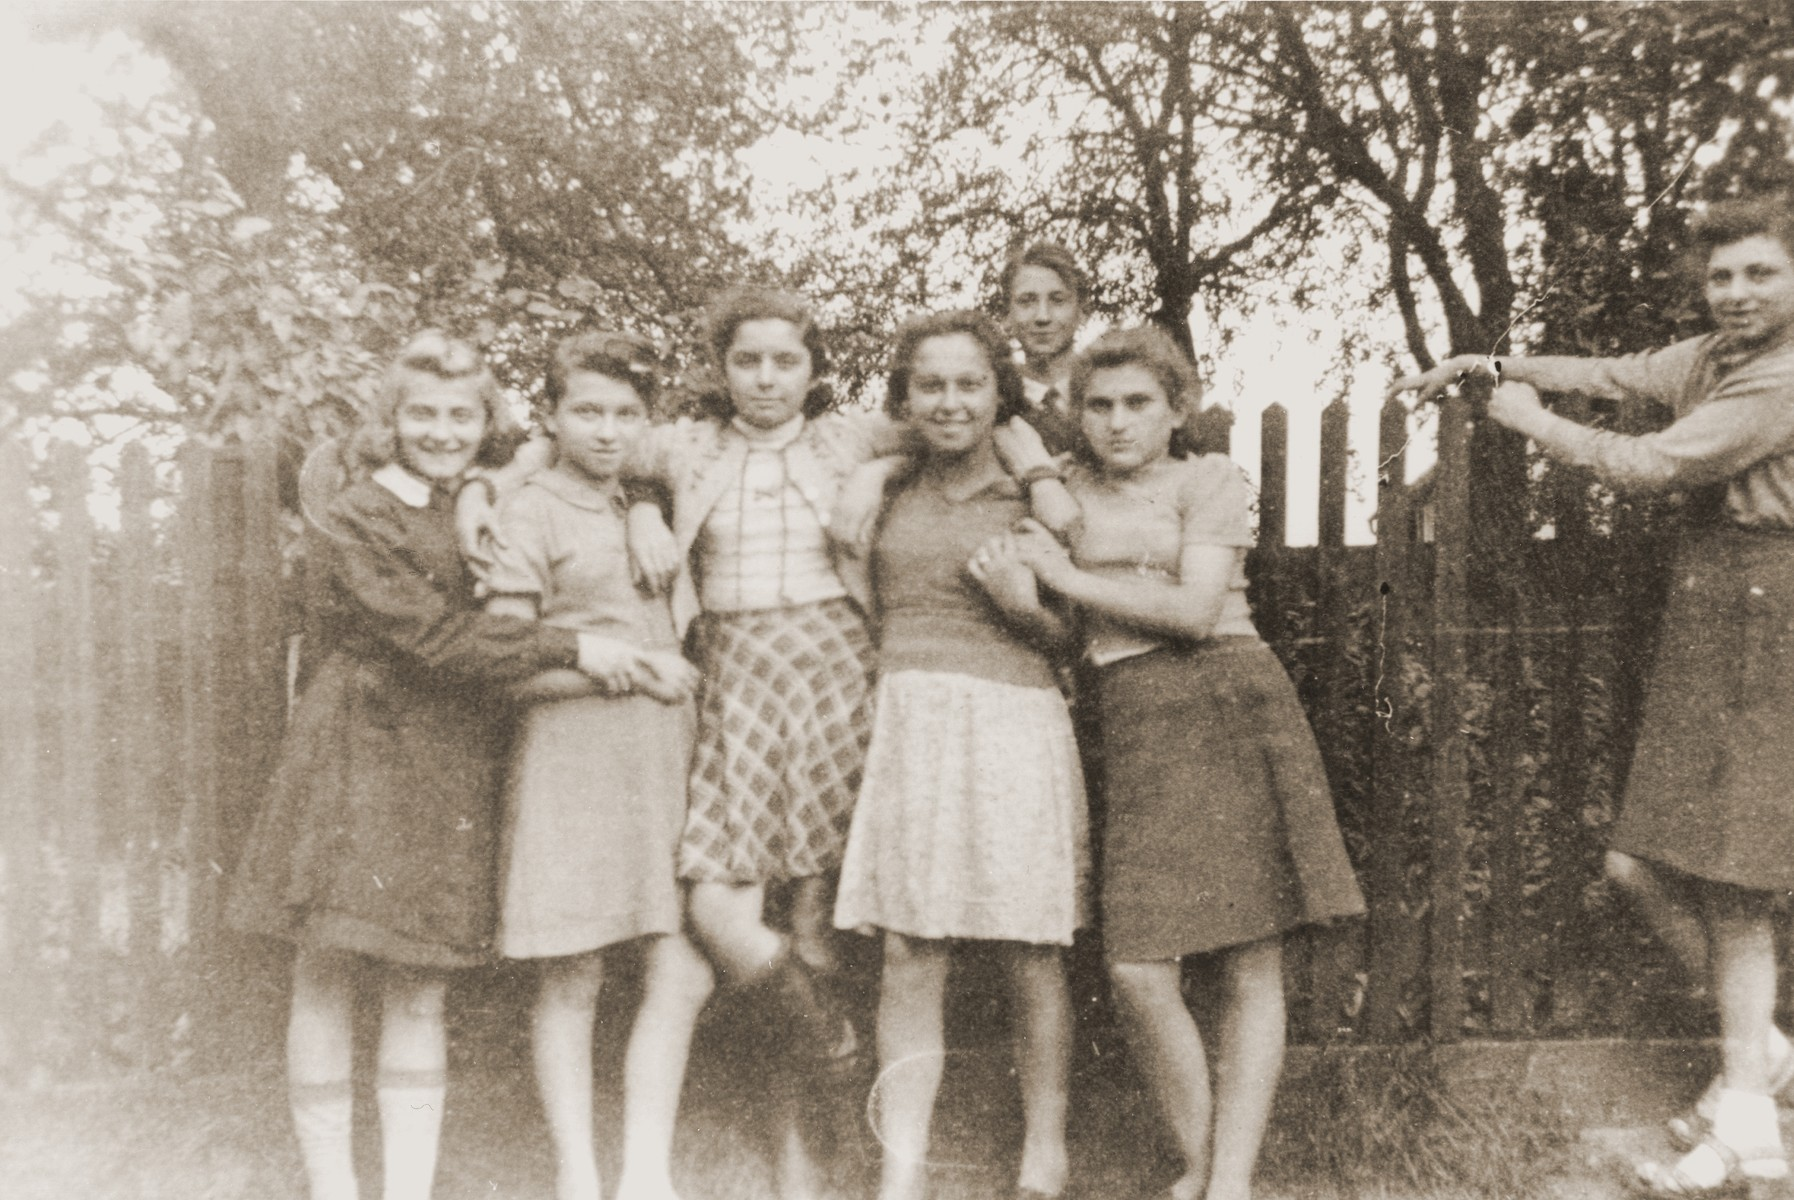 Group portrait of teenage orphans in the Jewish children's home in Gleiwitz, Poland.  Among those pictured is Salusia Goldblum (left).